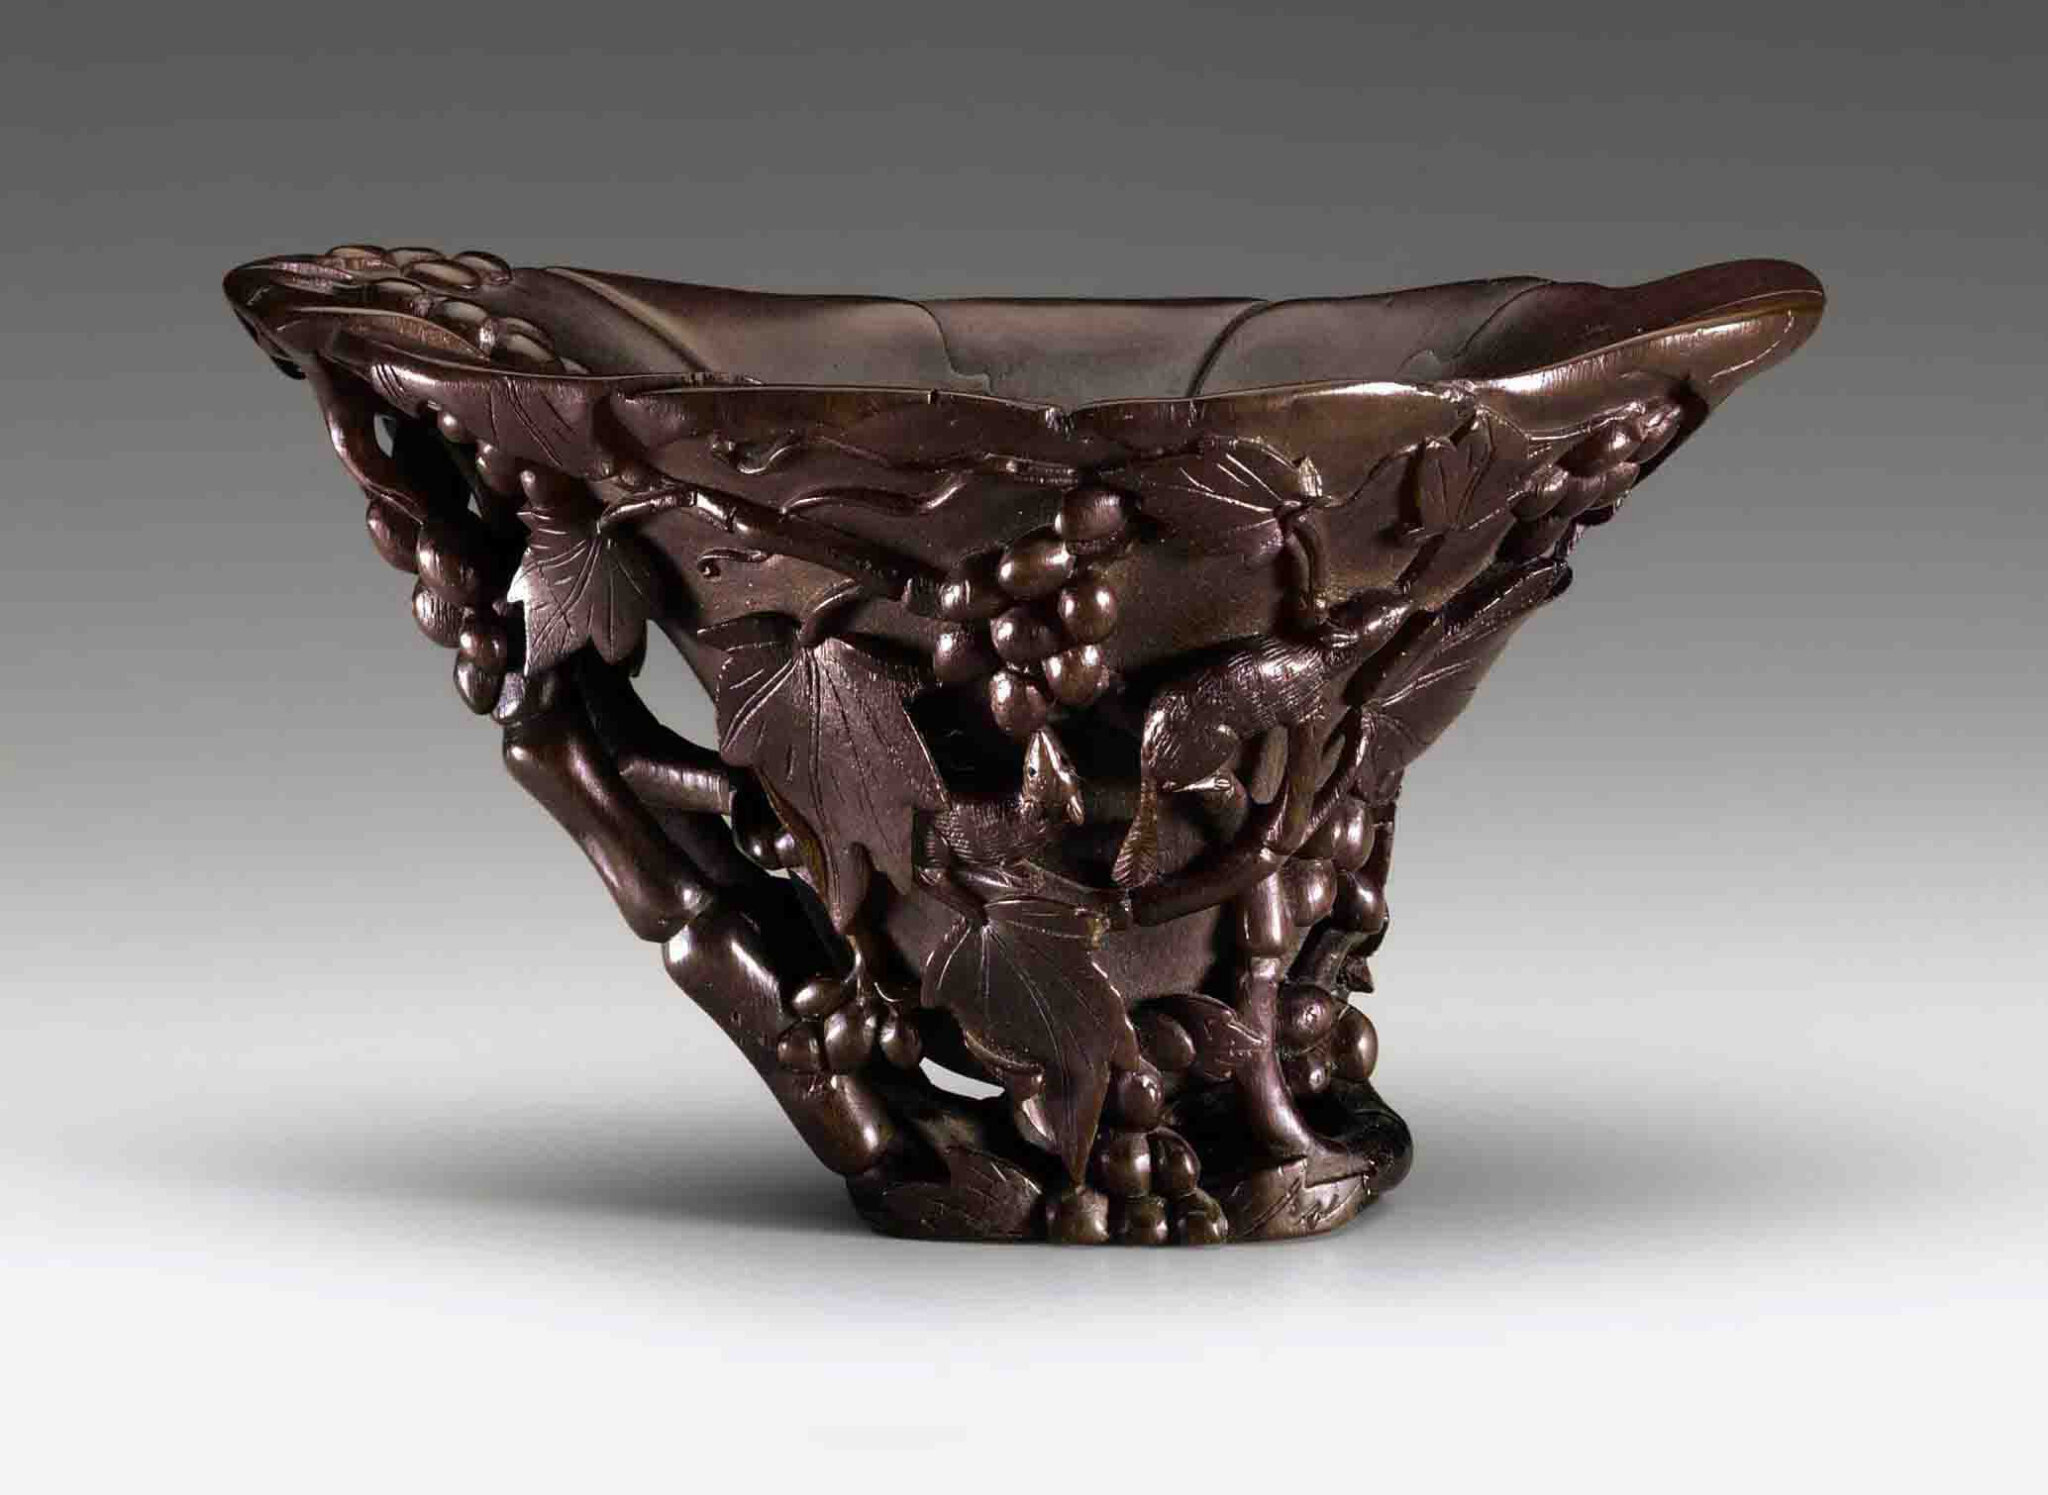 A large 'Squirrels and Grapes' rhinoceros horn cup, 17th-18th century